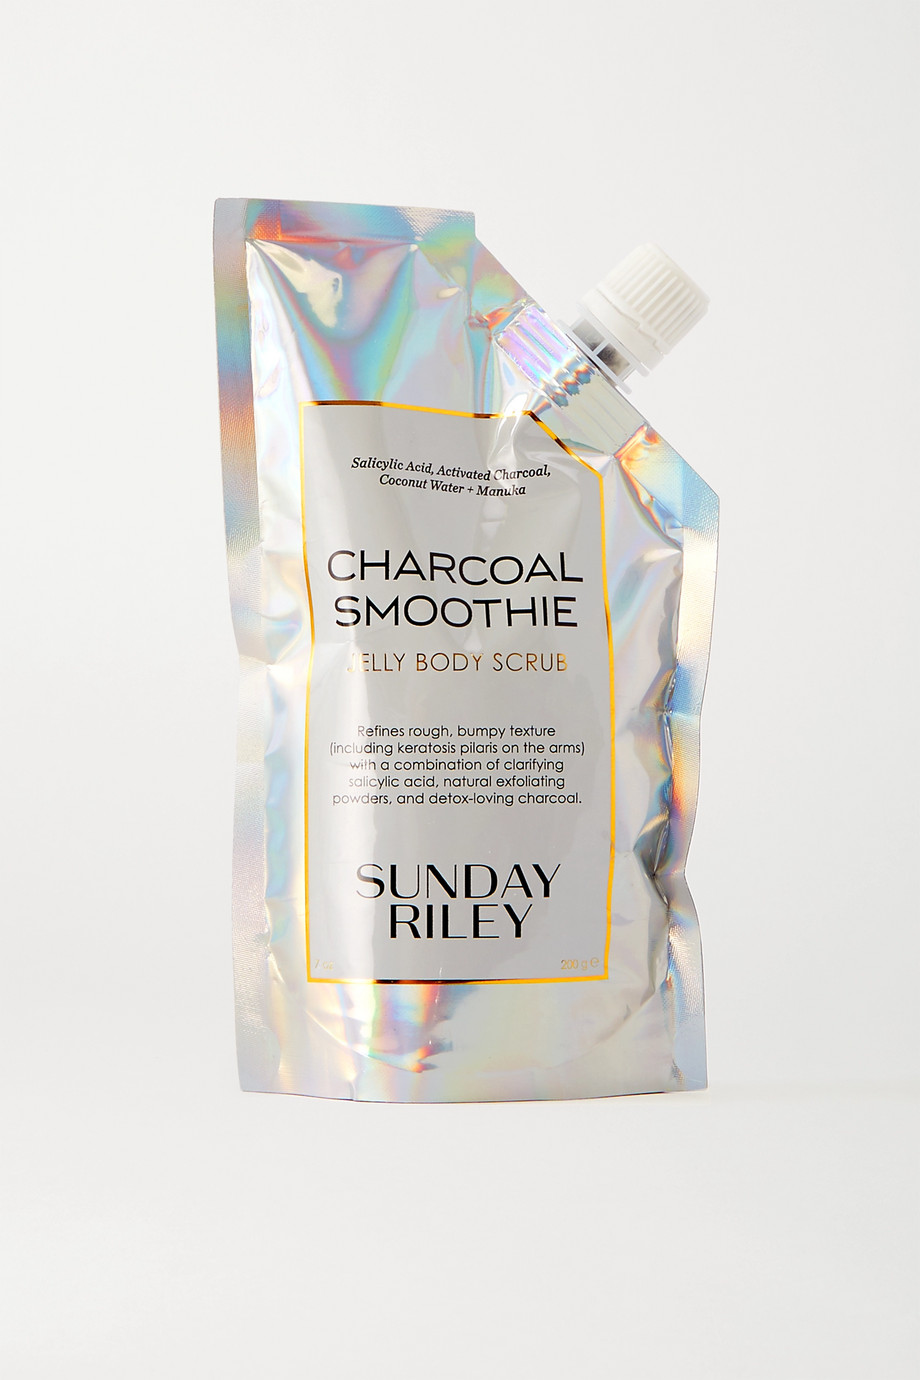 SUNDAY RILEY Charcoal Smoothie Jelly Body Scrub, 200g